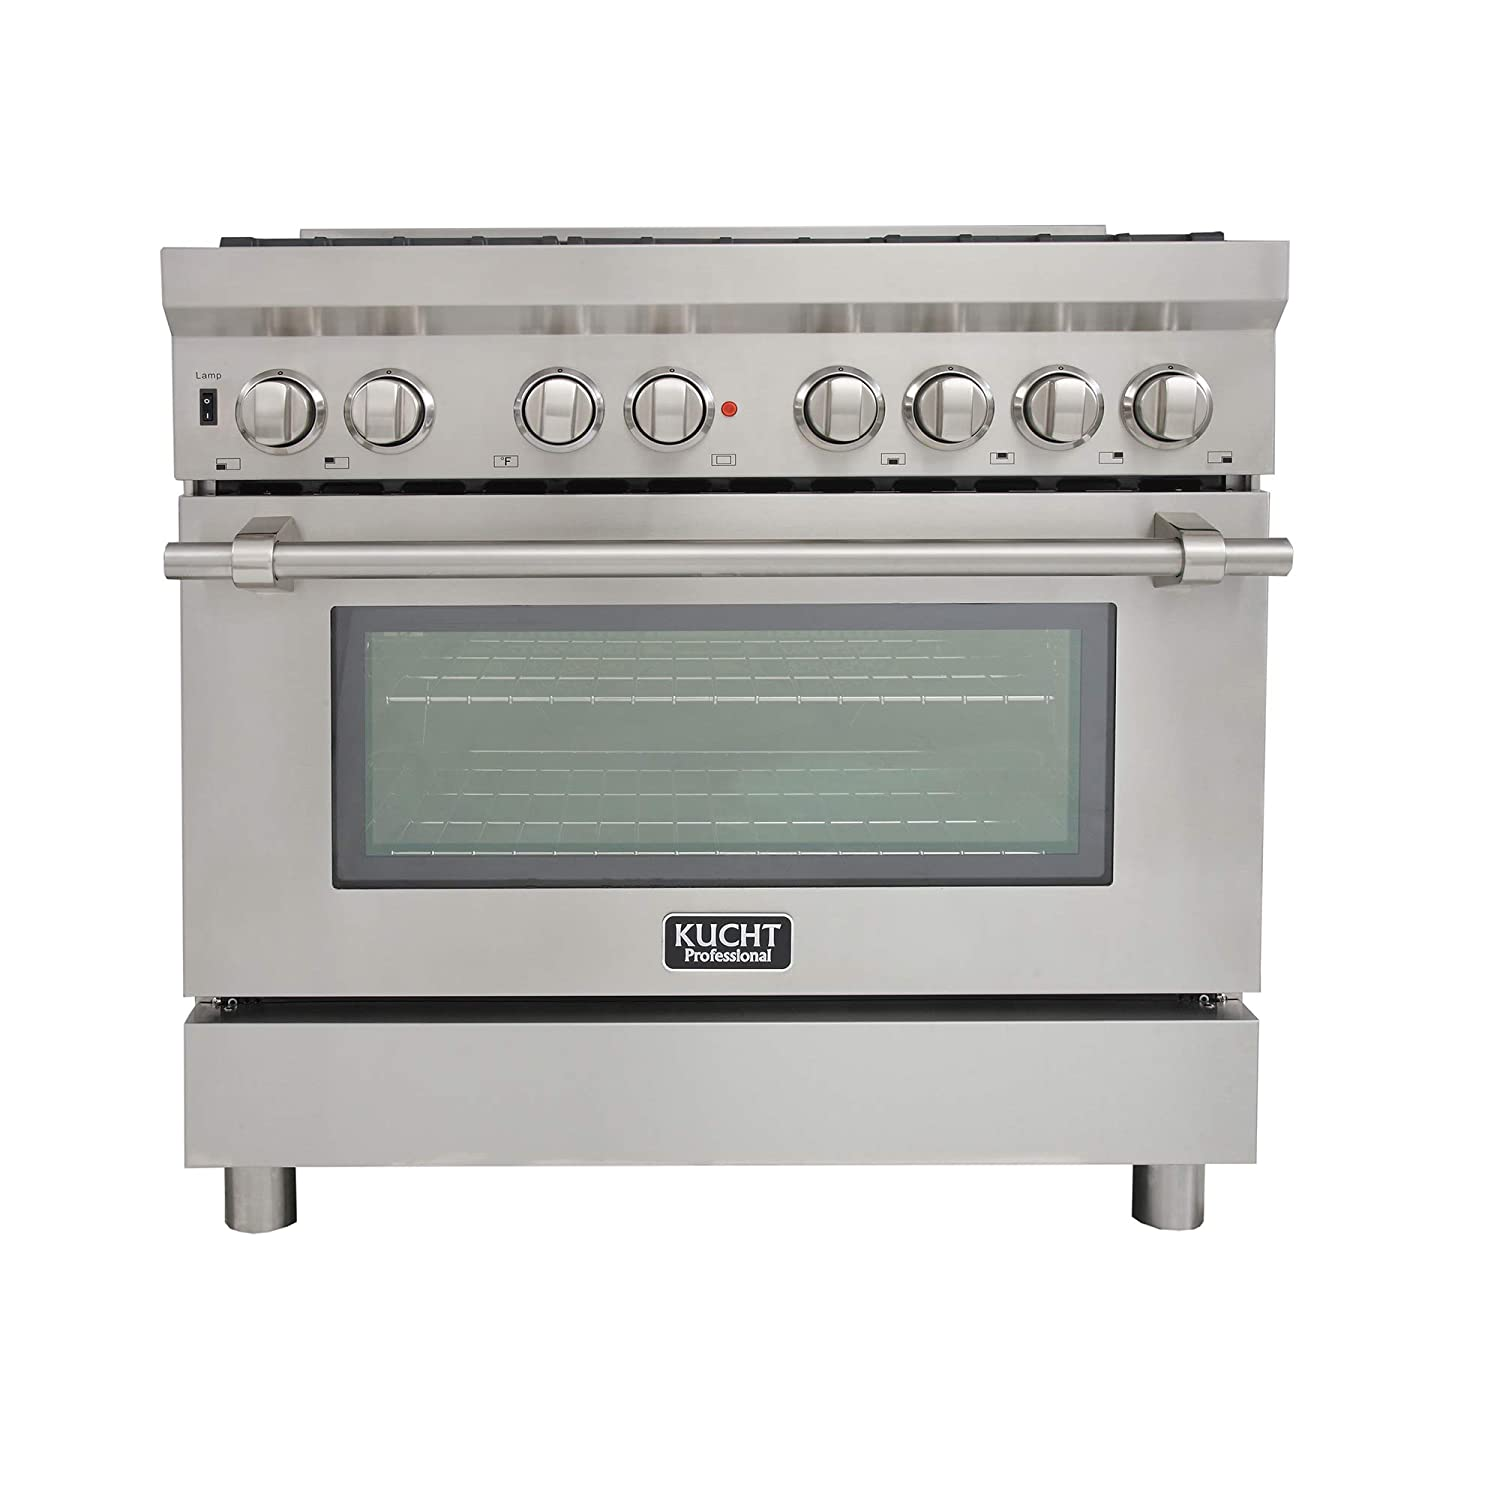 Kucht KPD361F/LP Pro. 36' 5.2 cu.ft. Dual Fuel Range for Propane Gas with Sealed Burners, Convection Oven in Stainless-Steel Kucht Appliances